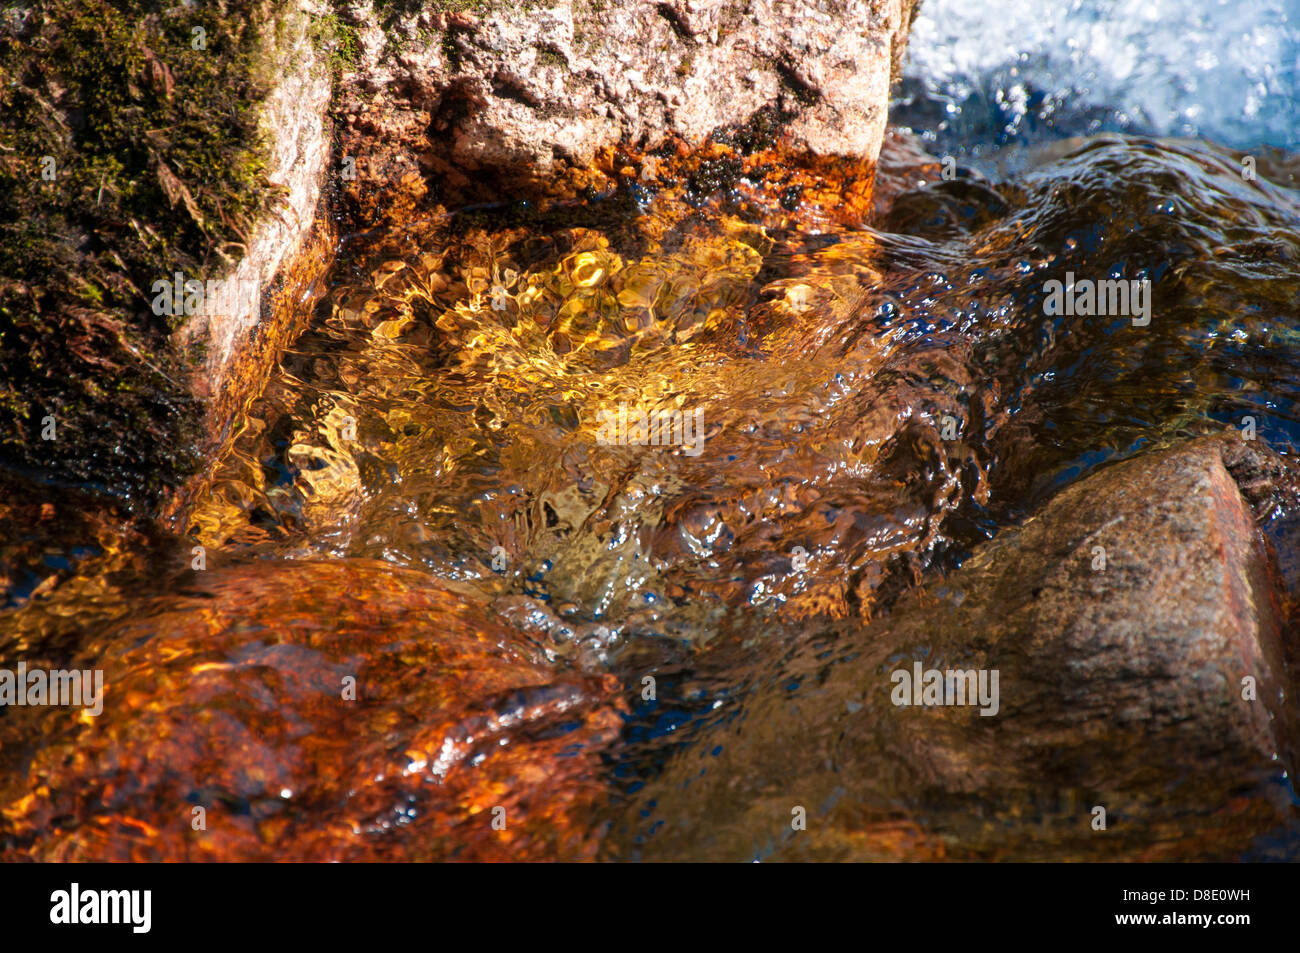 Crystal clear water flowing over golden rocks - Stock Image